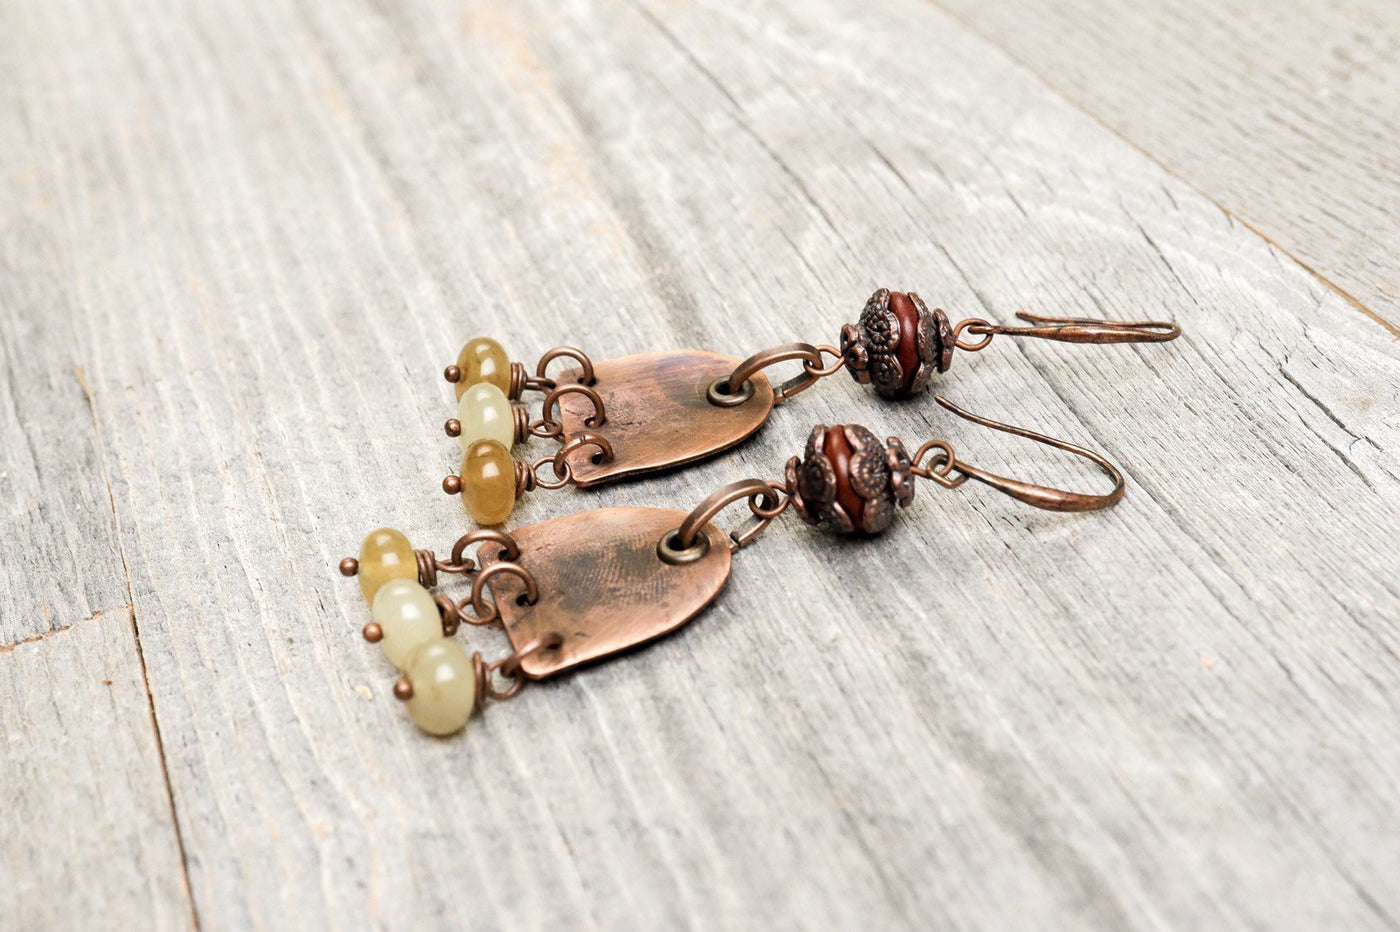 Cloudy Yellow Jade Copper Earrings - Distressed Stone Dangle Antique Boho Gypsy Big Hippie Unique Statement Bohemian Rustic Handmade Jewelry